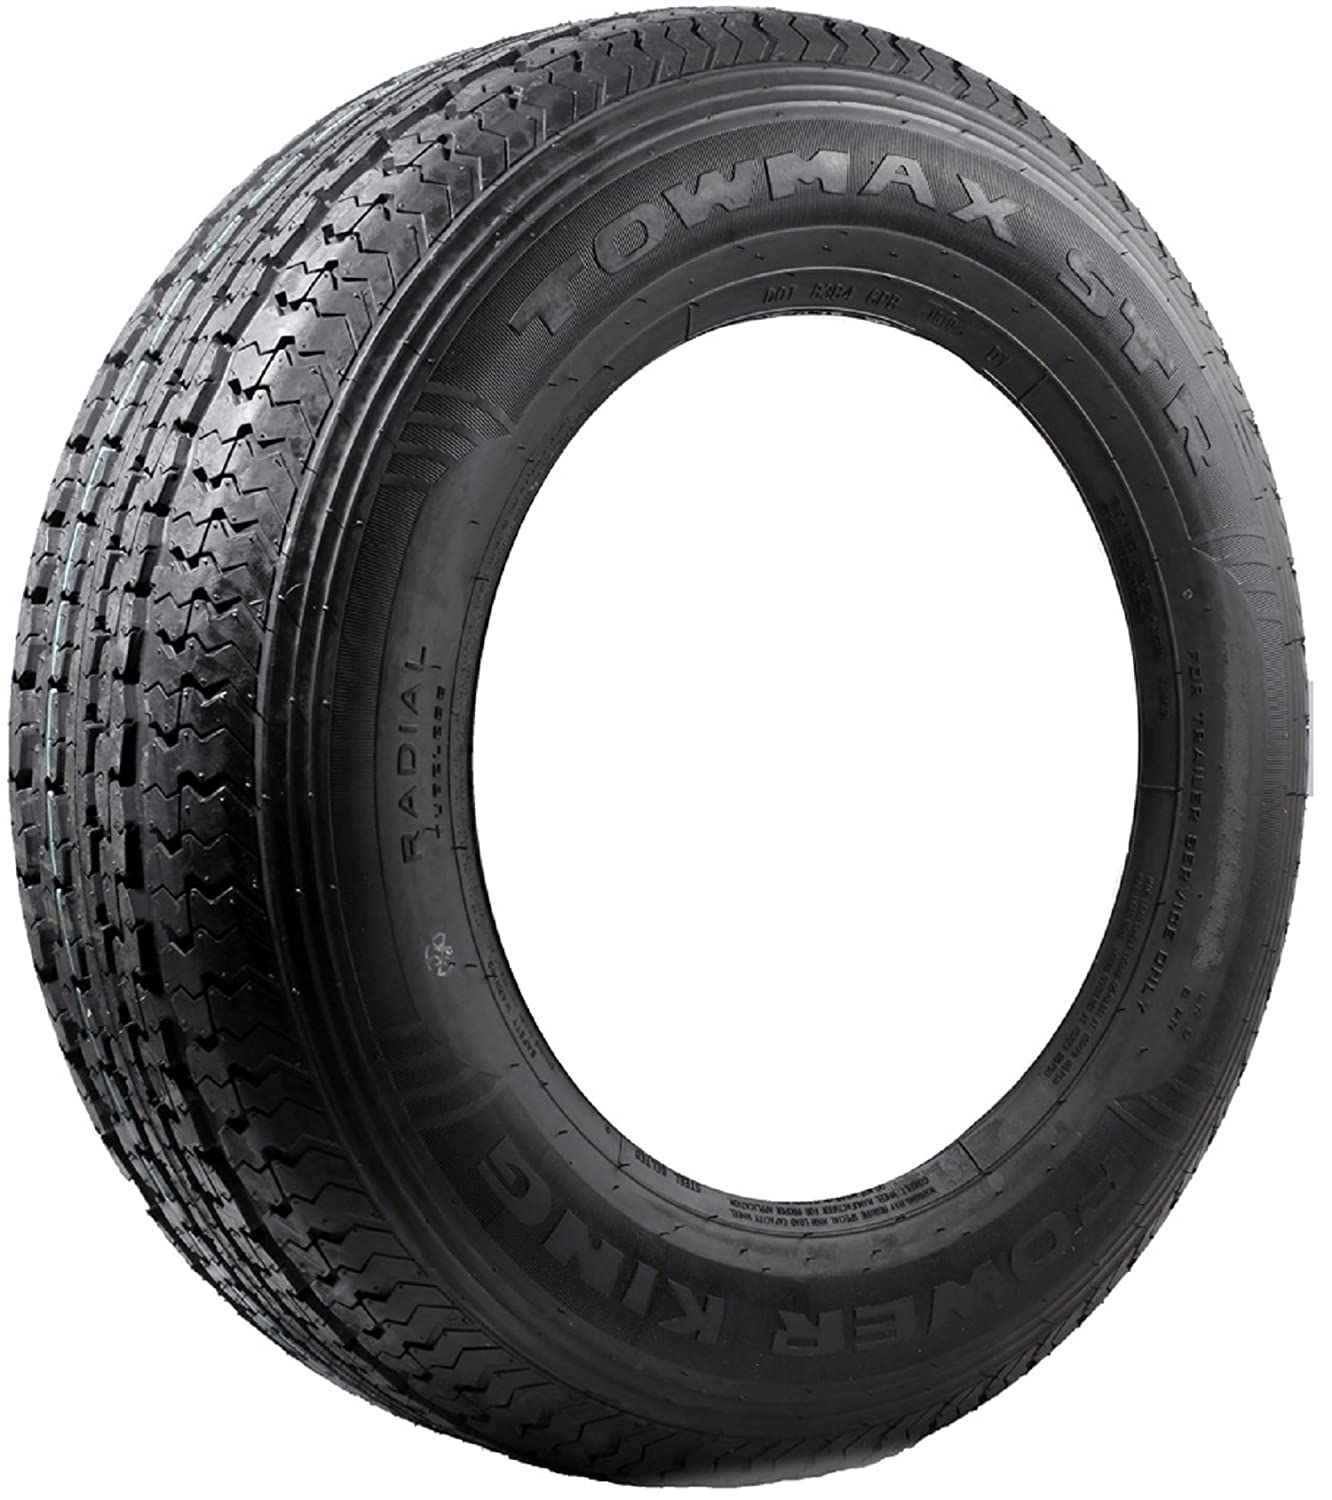 Towmax ST235/80R16 STR II 10 Ply E Load Radial Trailer Tire 2358016